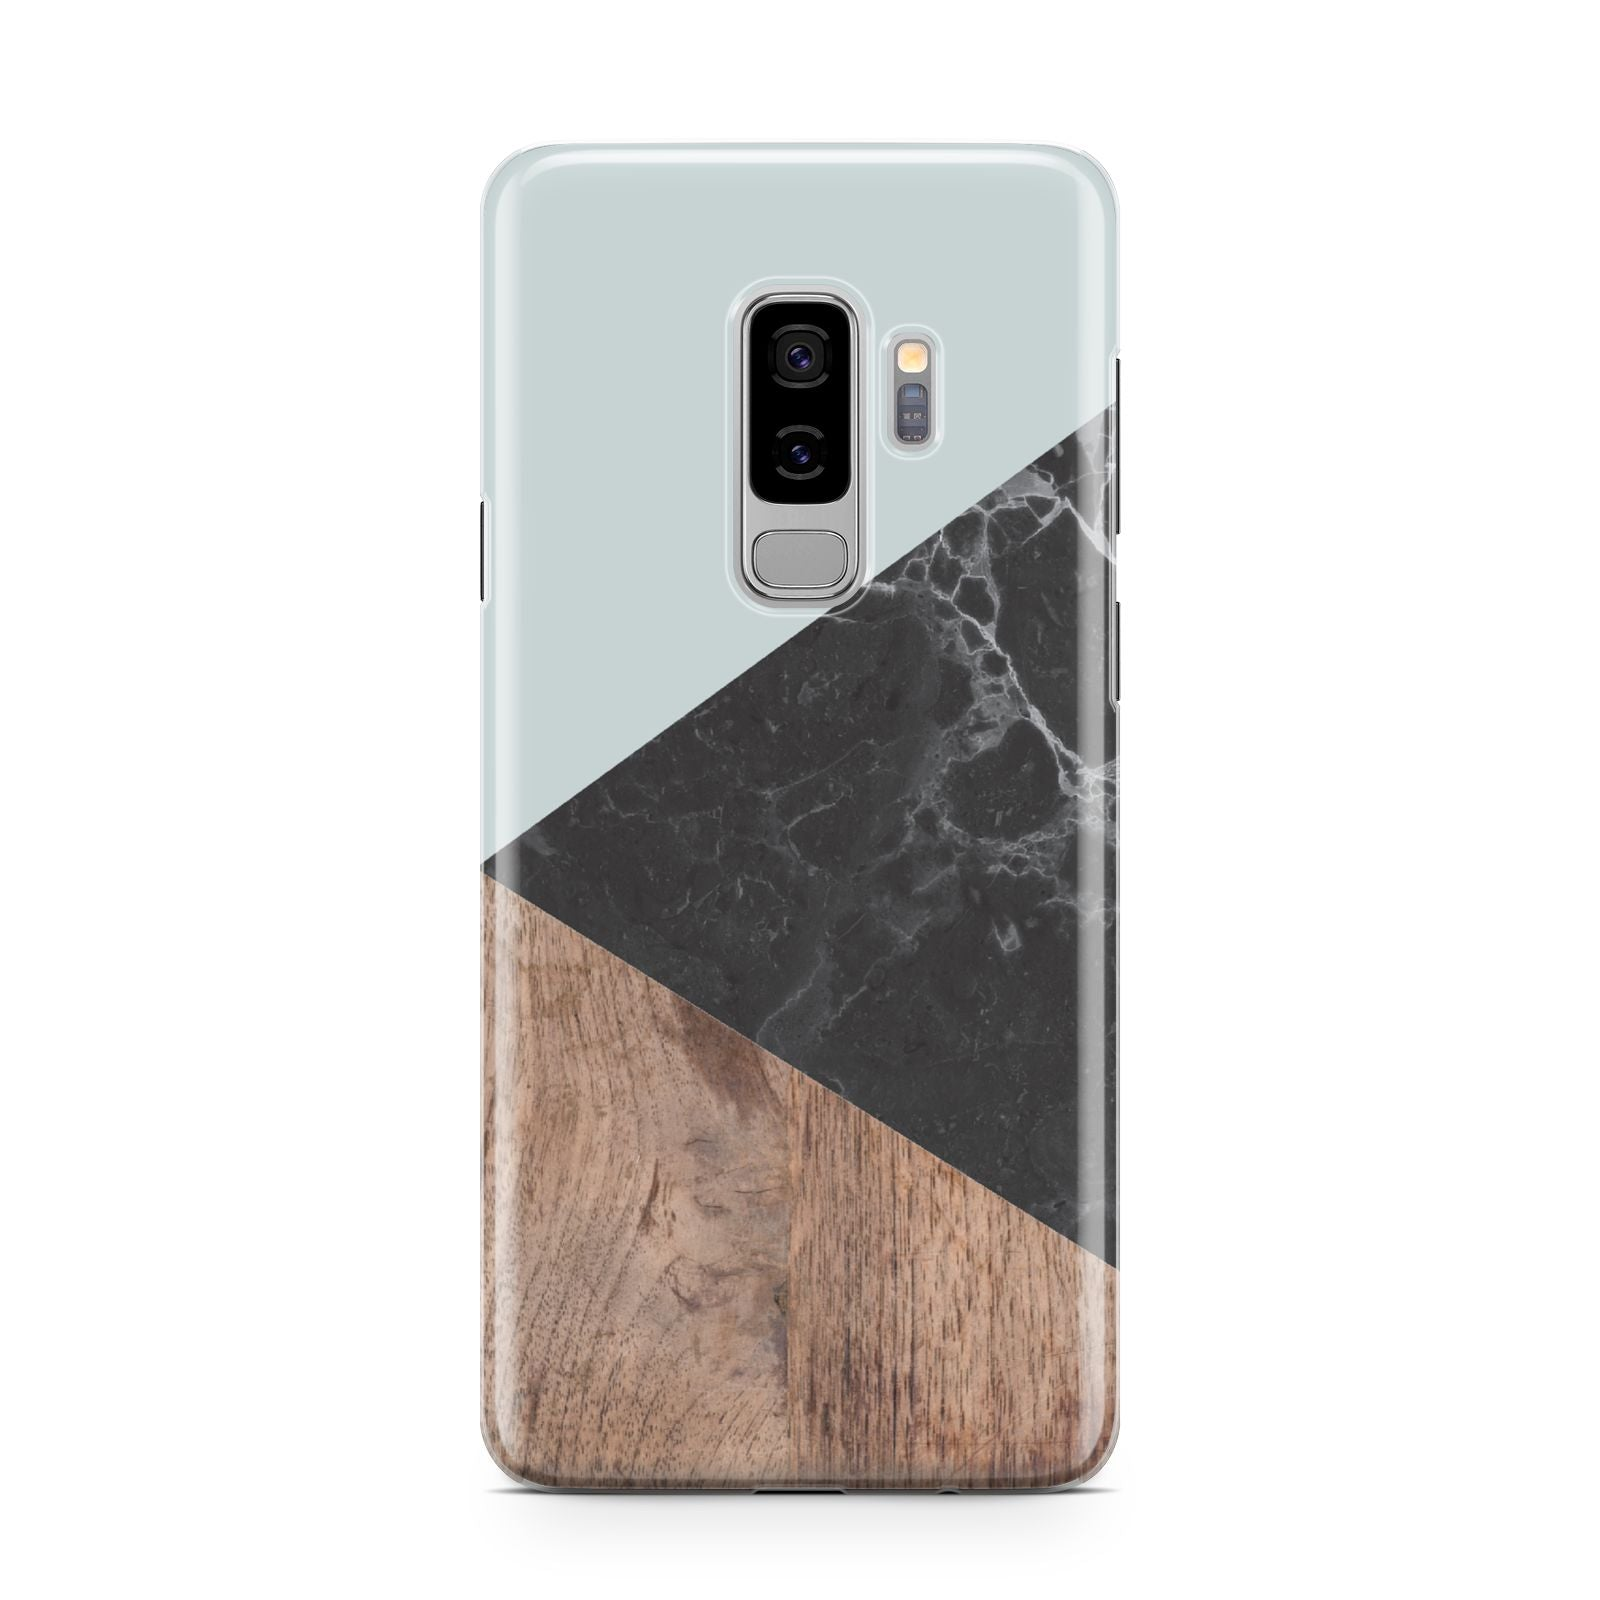 Marble Wood Geometric 2 Samsung Galaxy S9 Plus Case on Silver phone